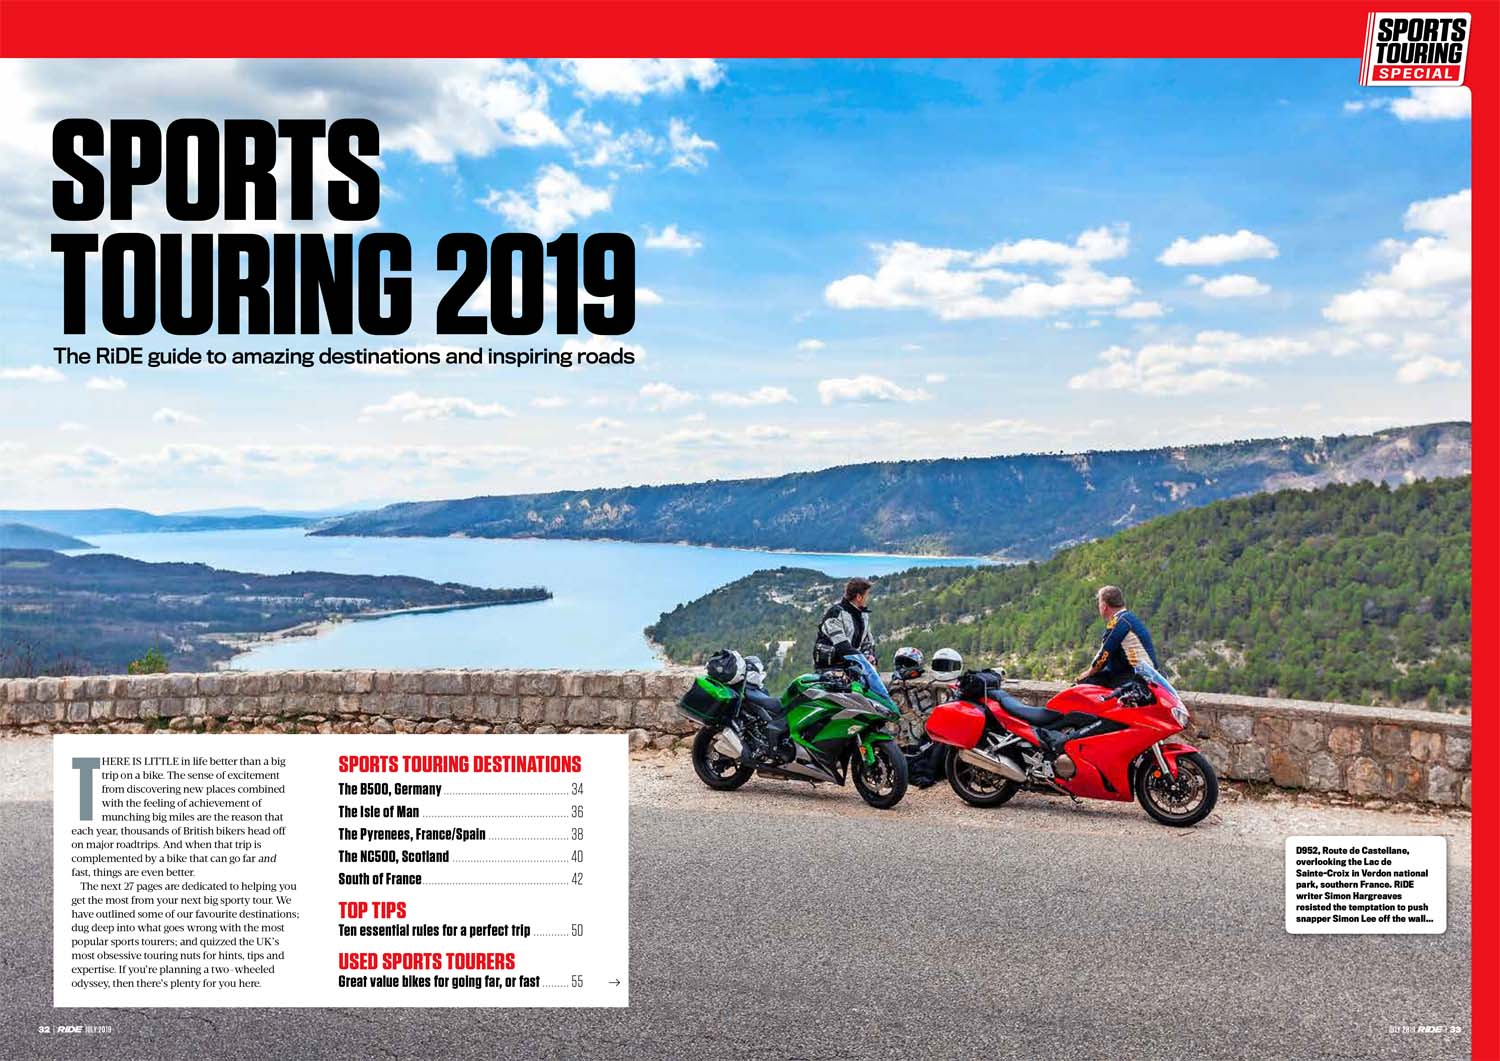 SPORTS TOURING Contents_1500.jpg